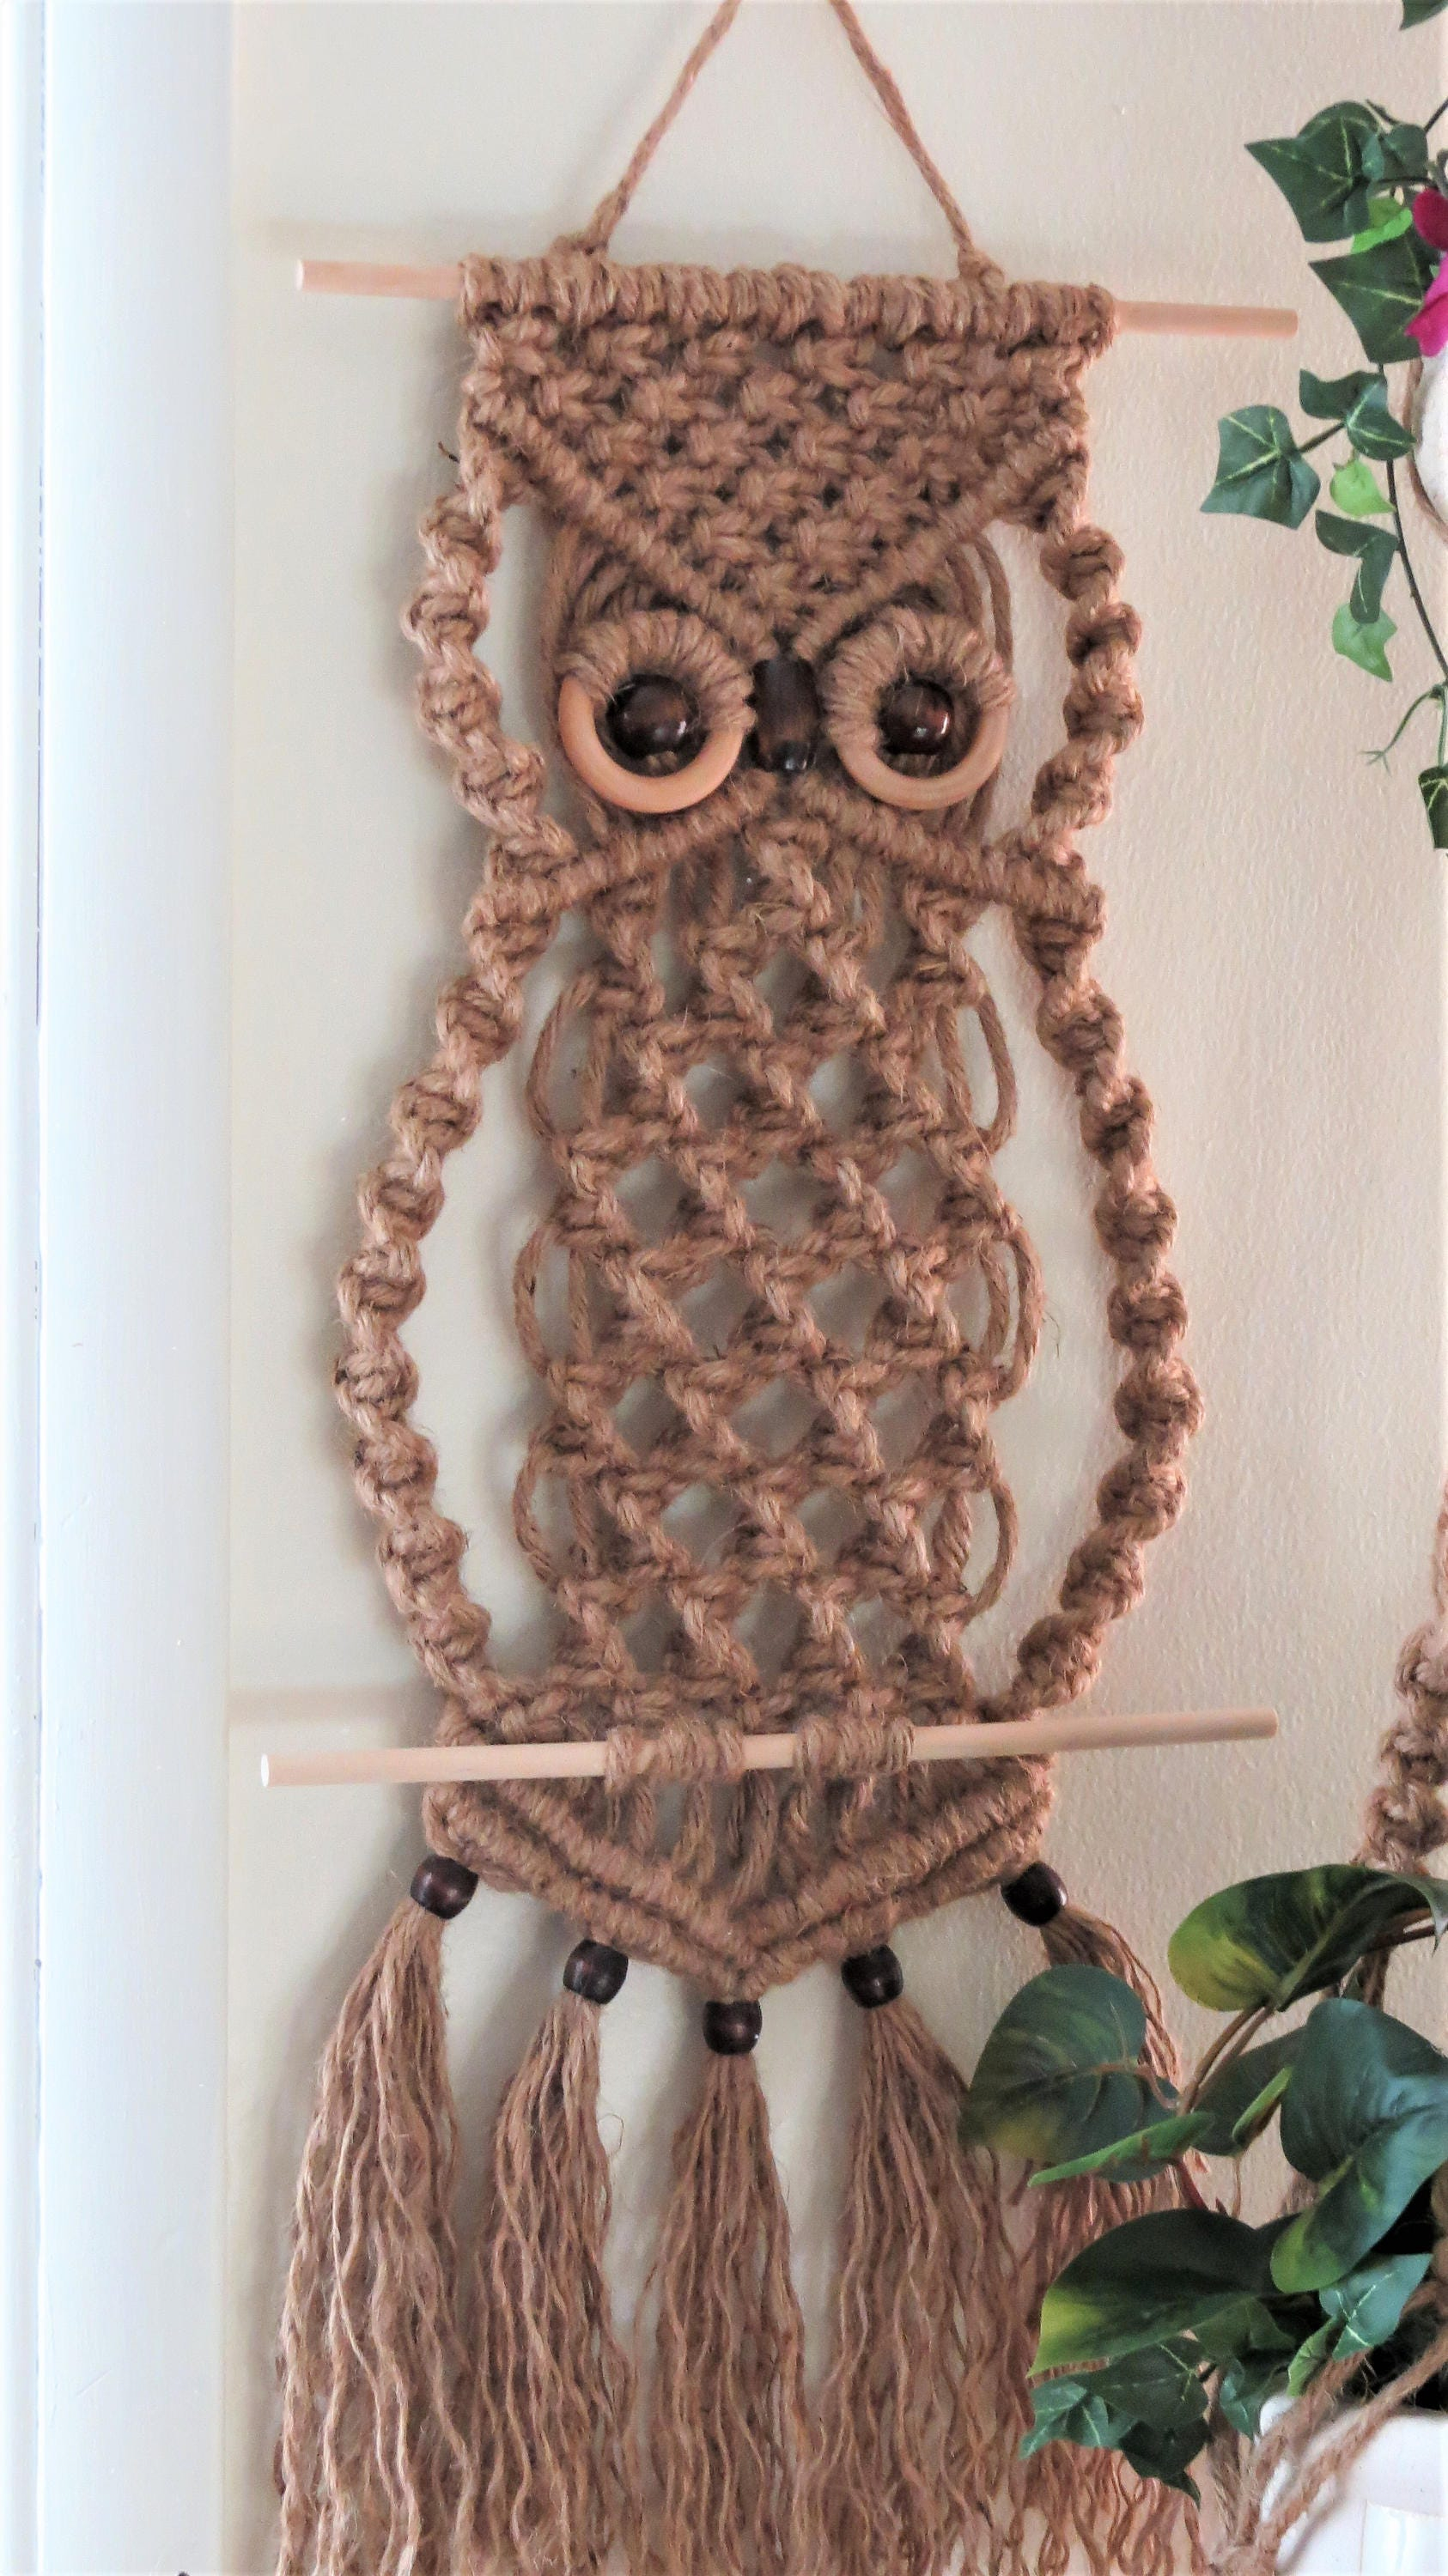 Macrame Decor - Macrame Decoration - 70s Decor - Jute Macrame Plant ...